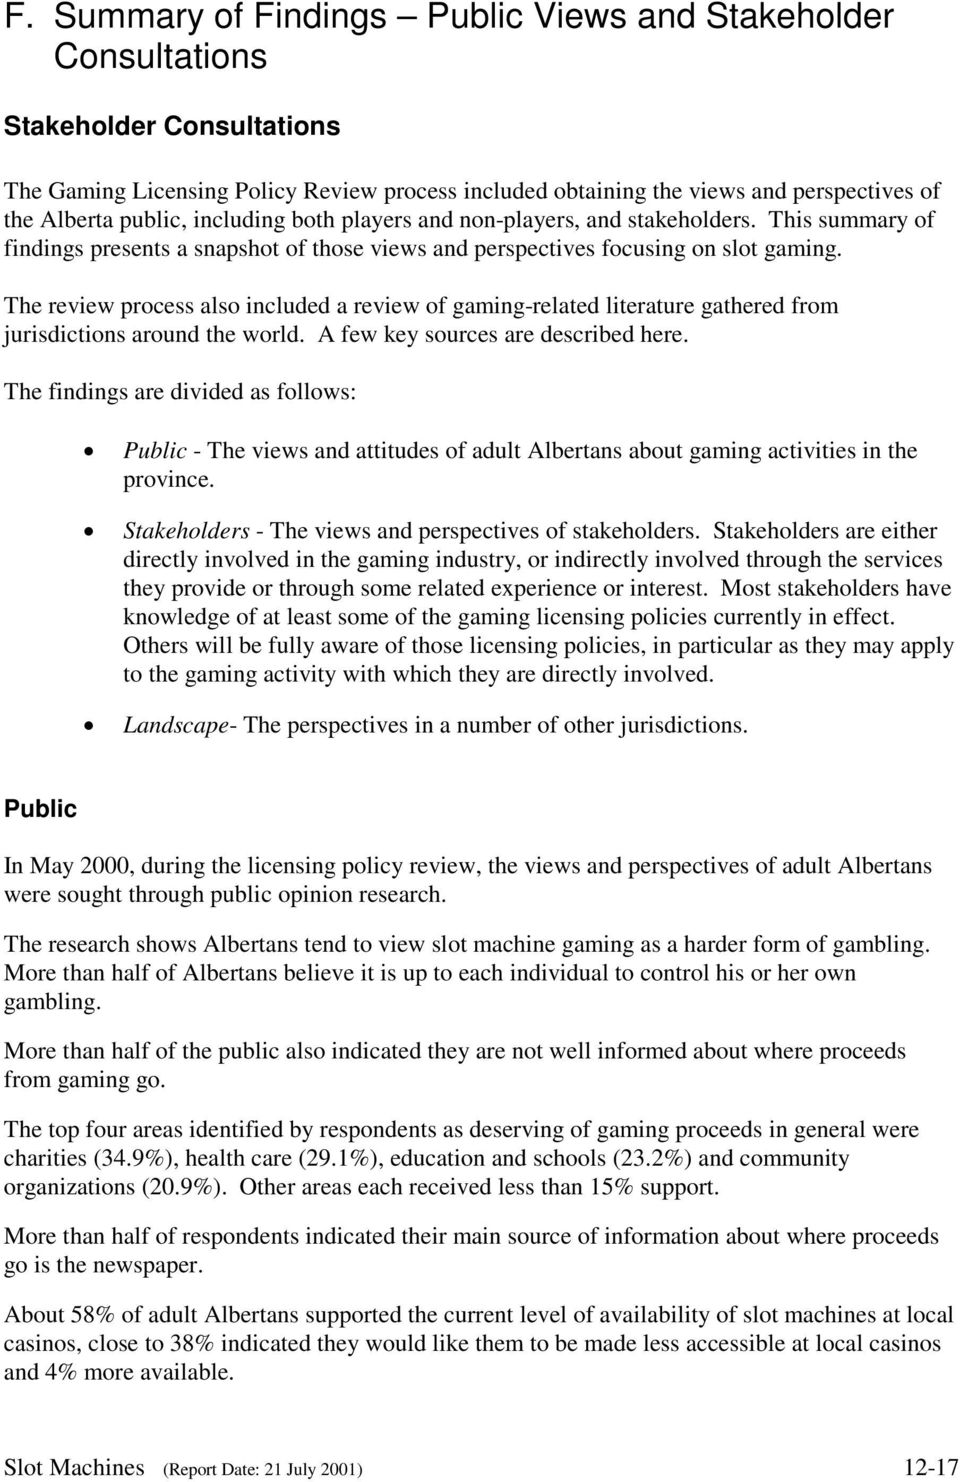 The review process also included a review of gaming-related literature gathered from jurisdictions around the world. A few key sources are described here.